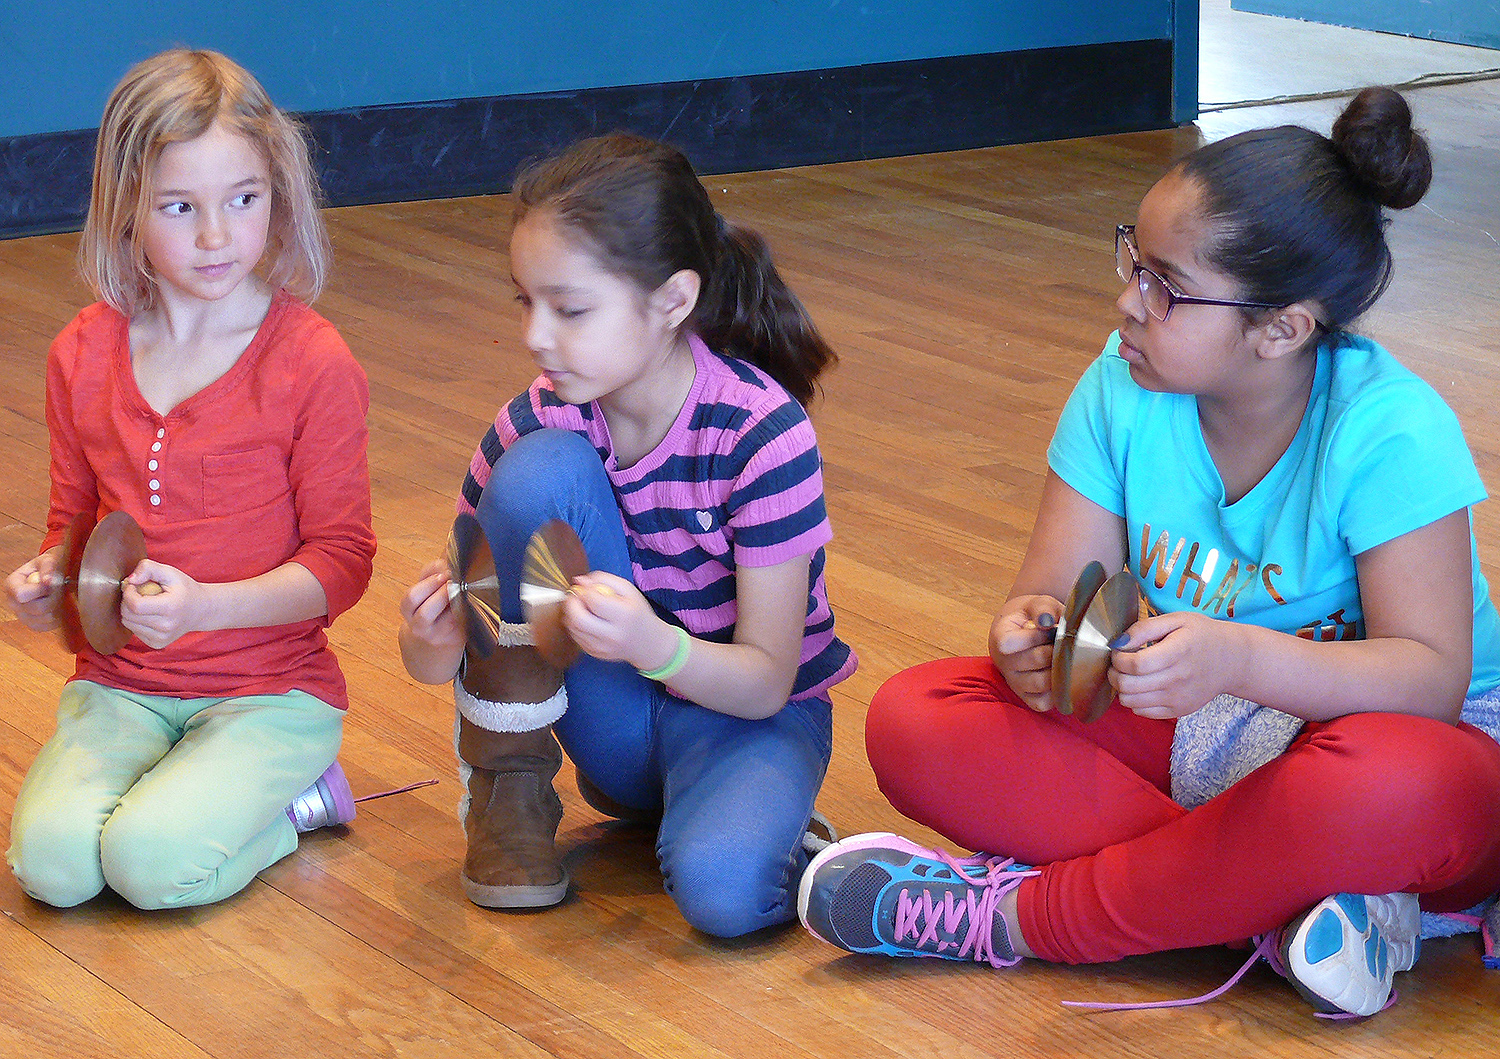 For many of the students, it was their first introduction to music theory and the complex layers of participation involved in creating an ensemble. The children began by learning about basic note values, such as the difference between a whole note and a half note, then moved into practicing rhythmic pattern exchanges, and ended by performing together as a percussion band.